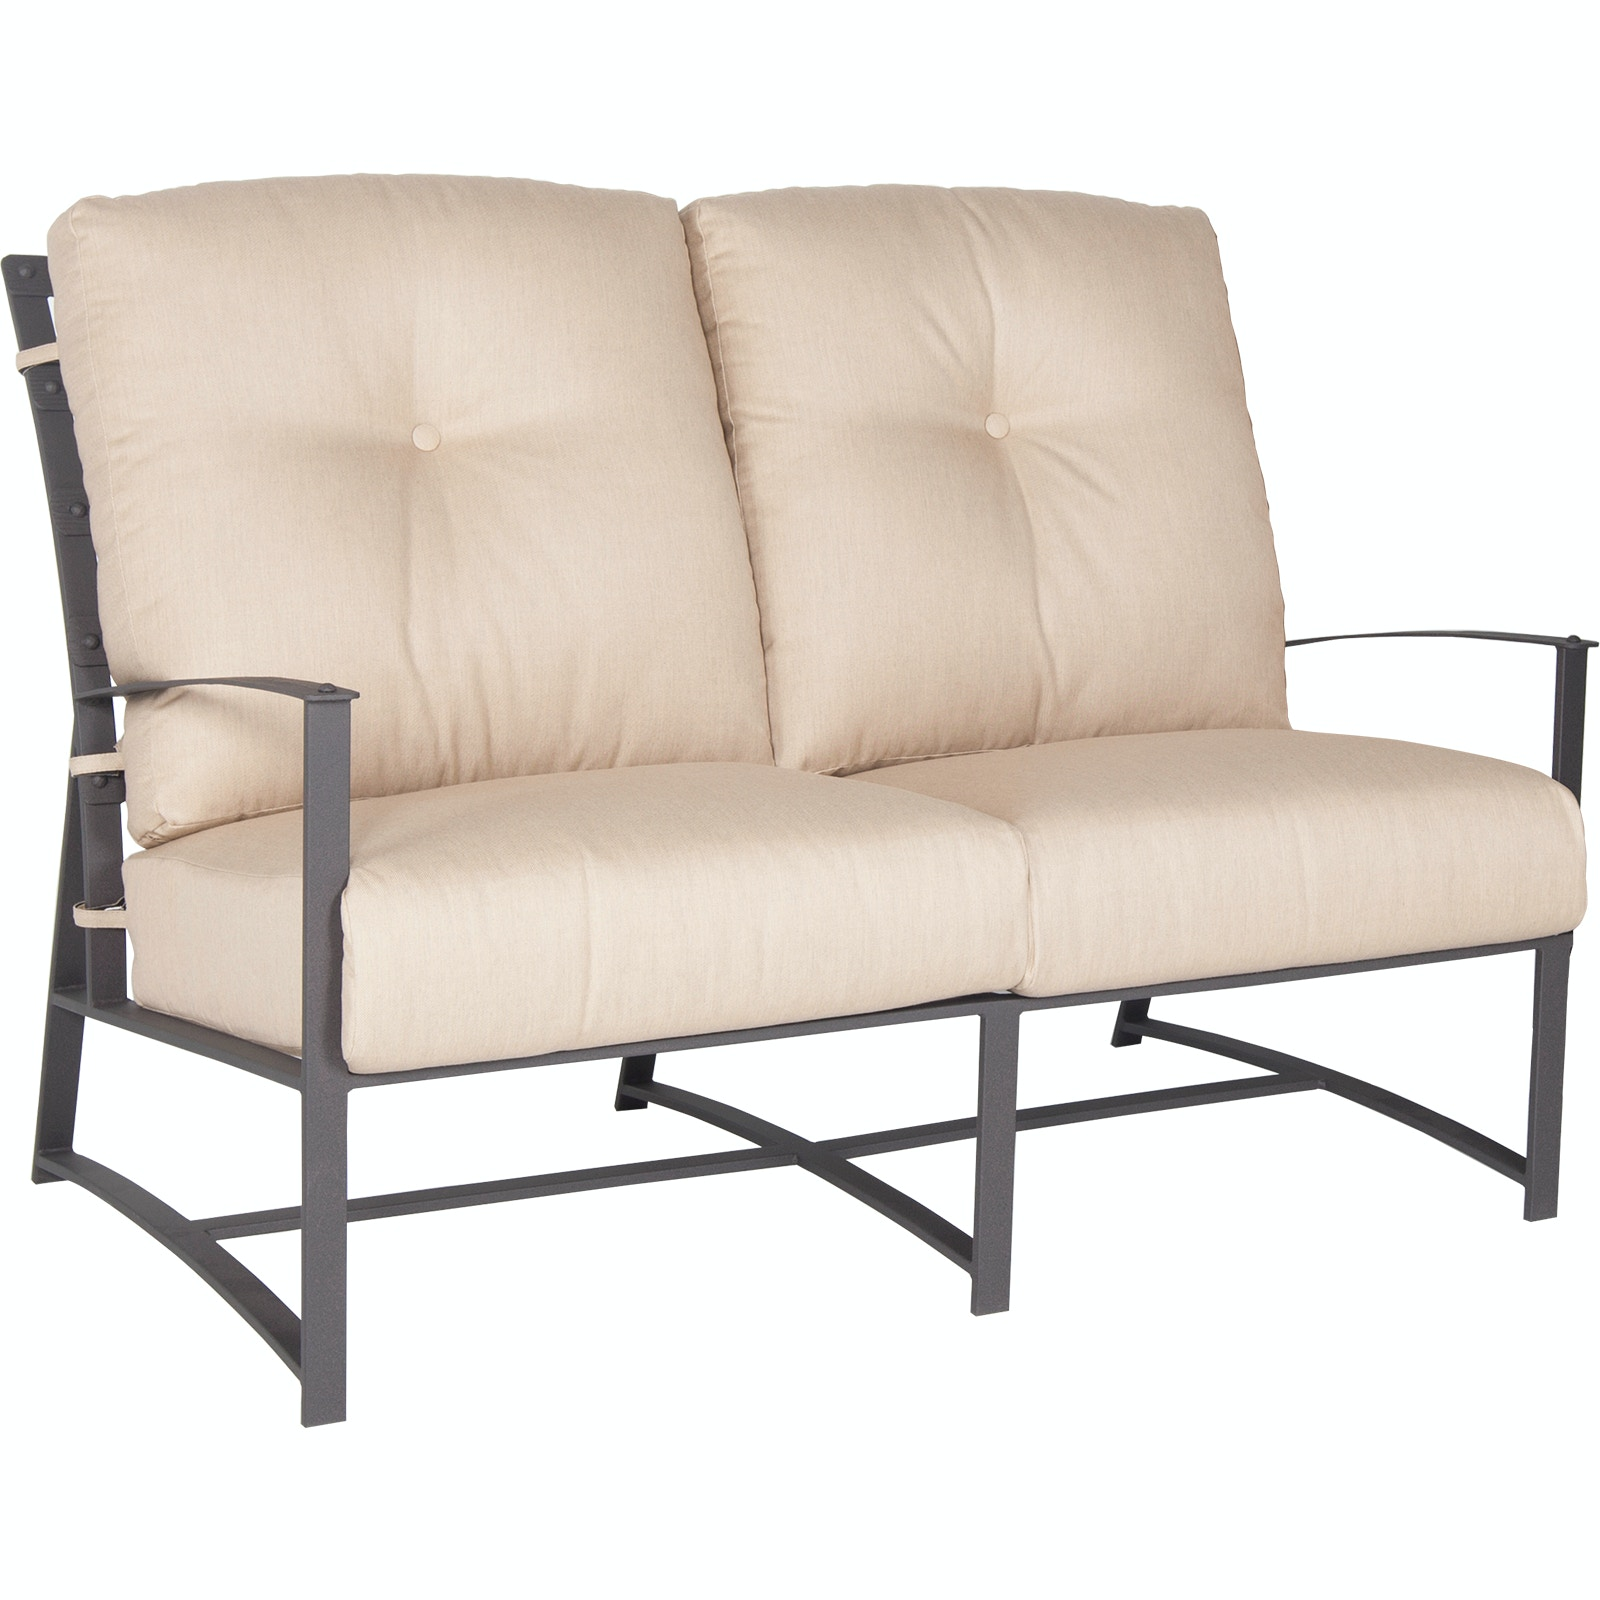 OW Lee Furniture Ridgewood Love Seat 73125 2S